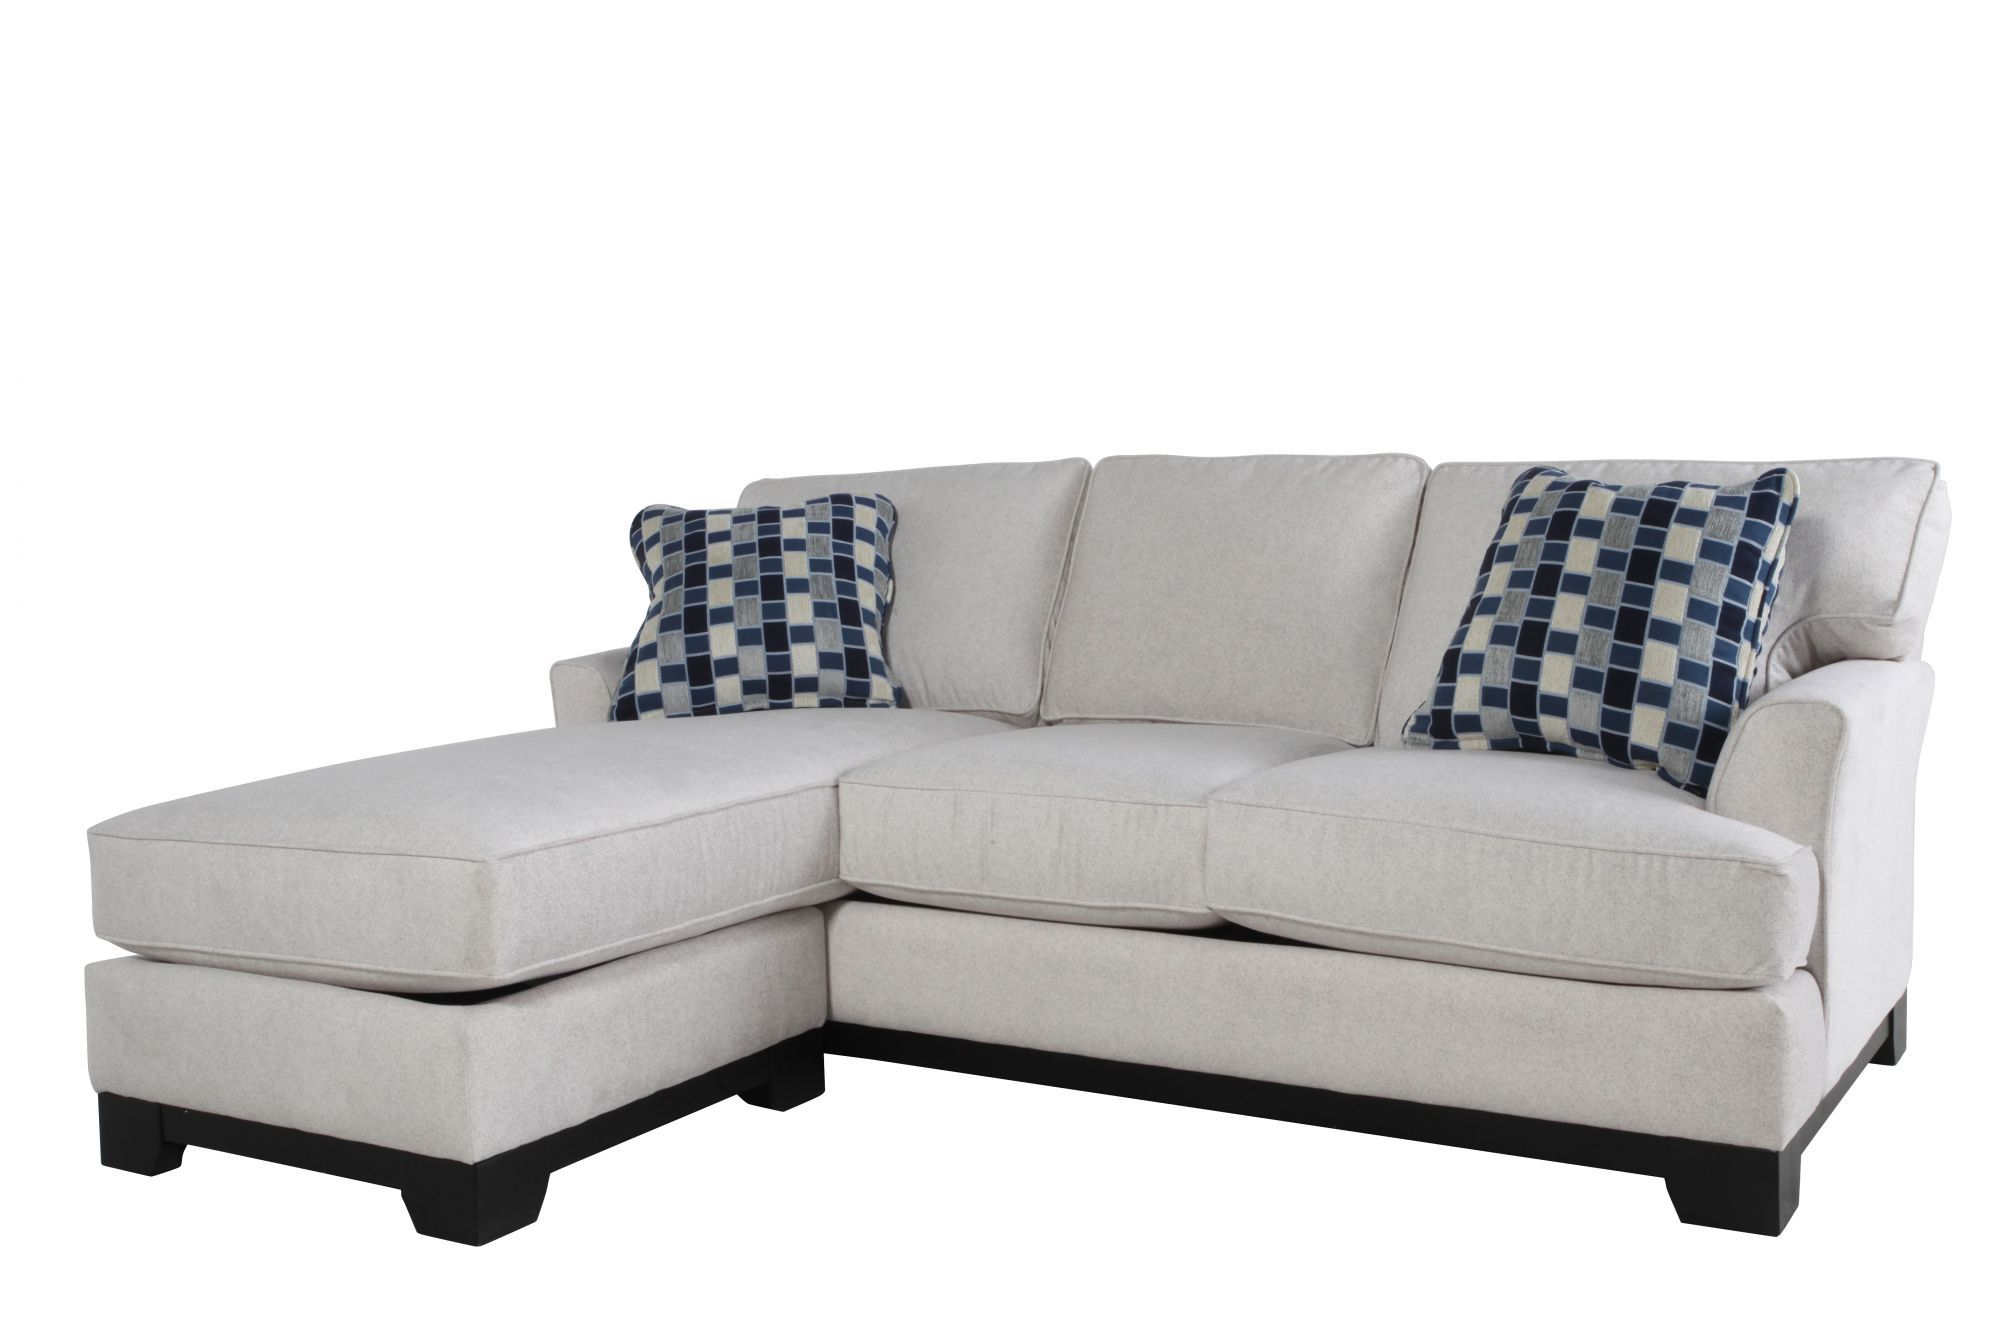 Fabulous Jonathan Louis Sagittarius Reverse Chaise Sofa For The Gmtry Best Dining Table And Chair Ideas Images Gmtryco